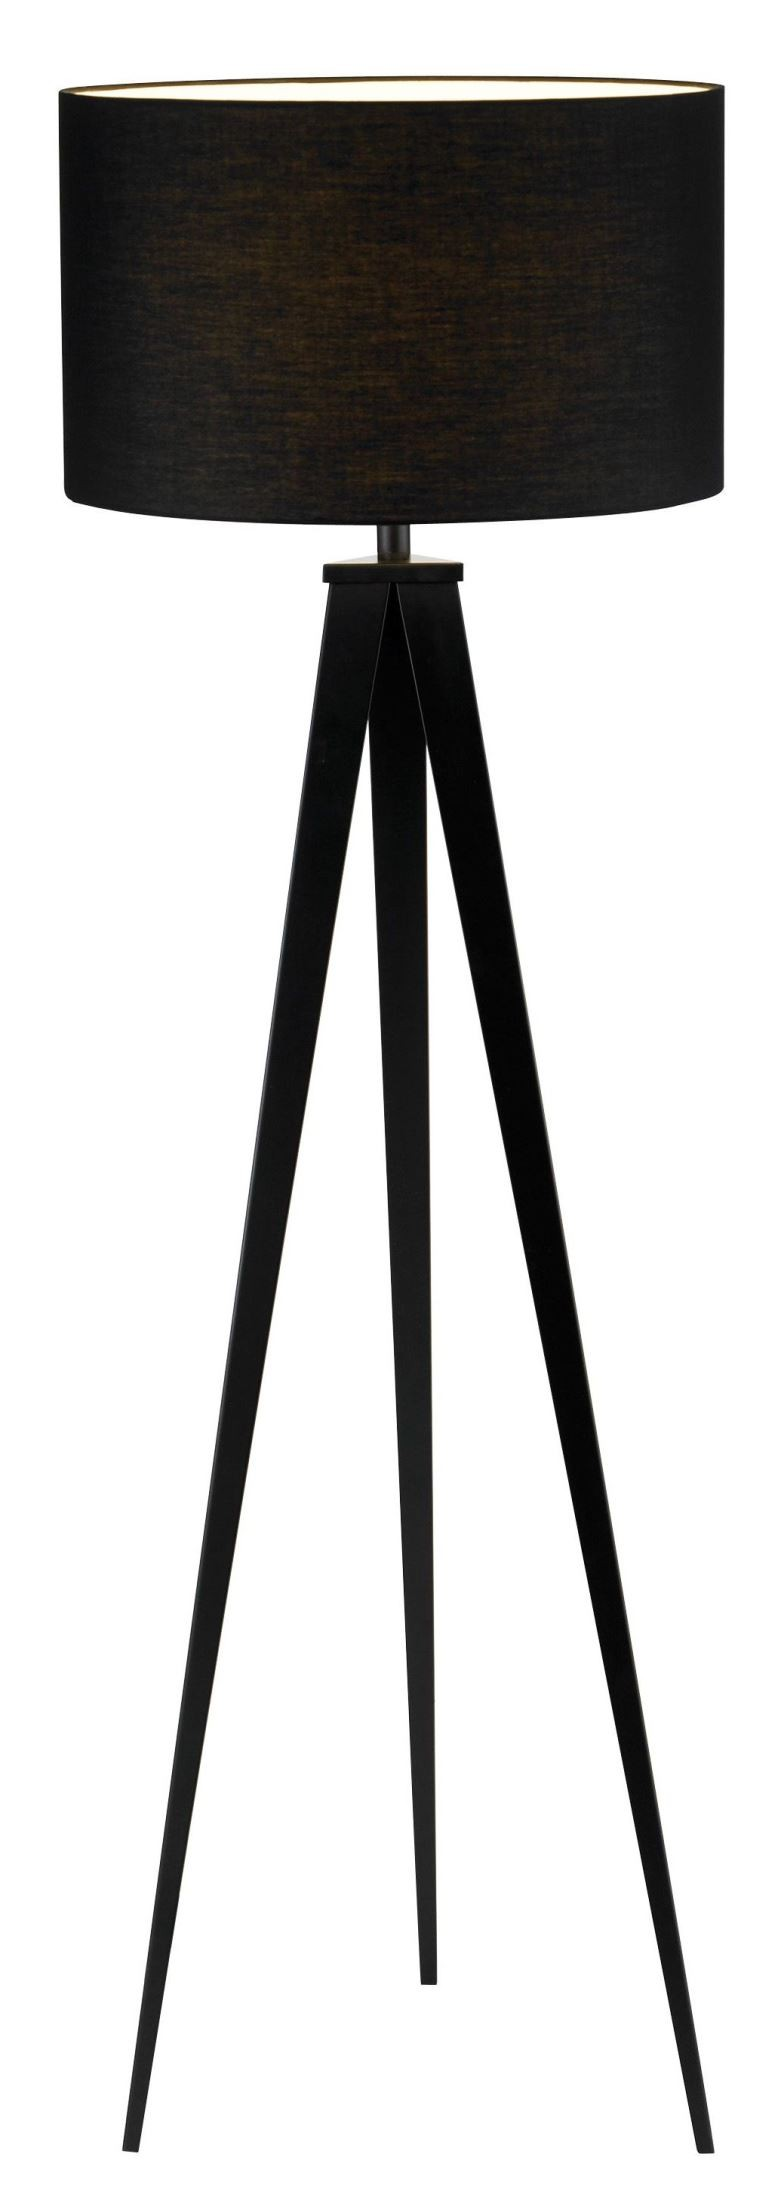 Director Black Floor Lamp From Adesso 6424 01 Coleman